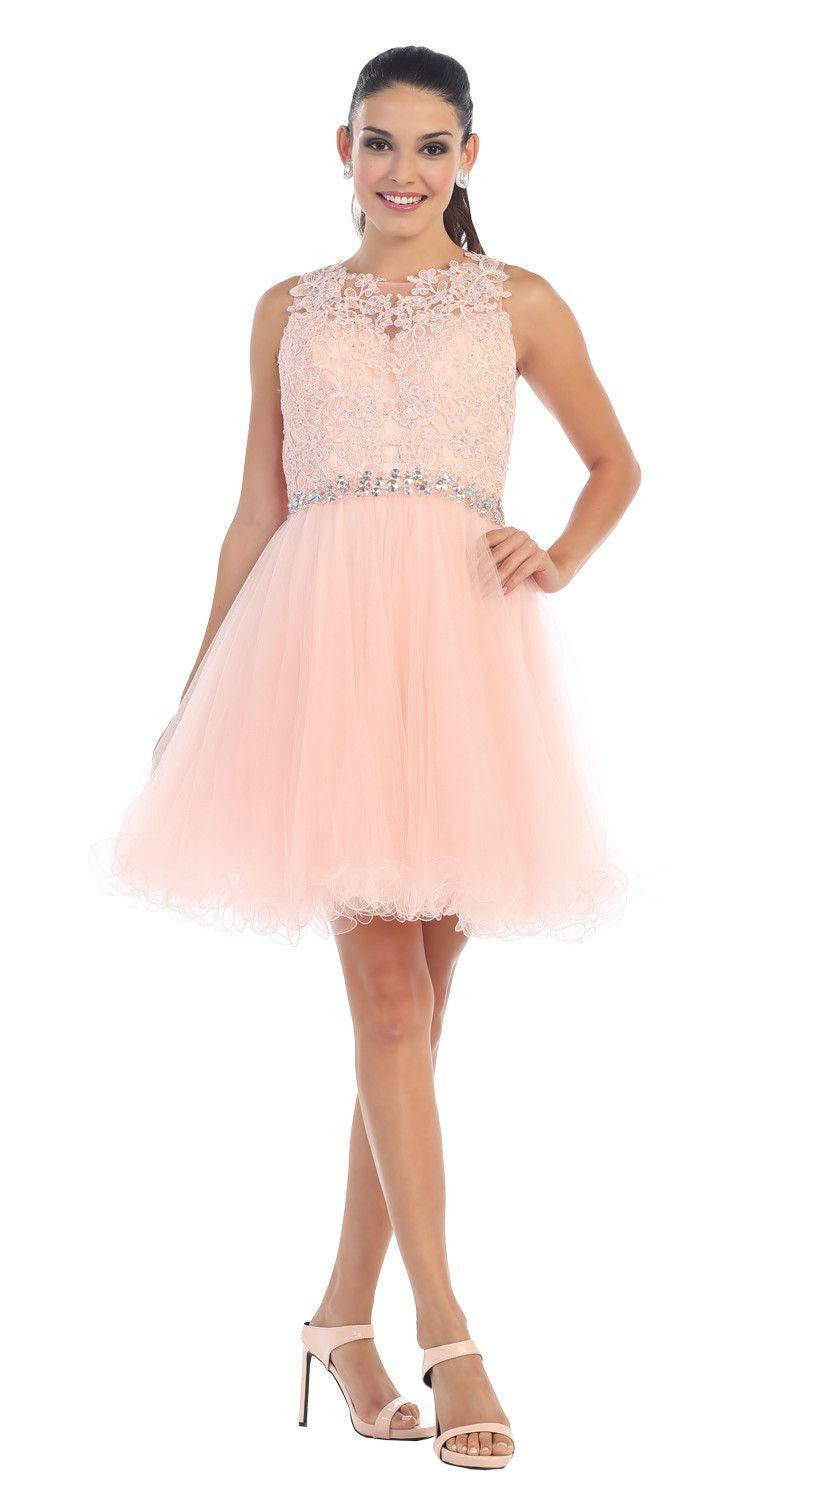 Short Prom Homecoming Graduation Dress - The Dress Outlet Blush May Queen